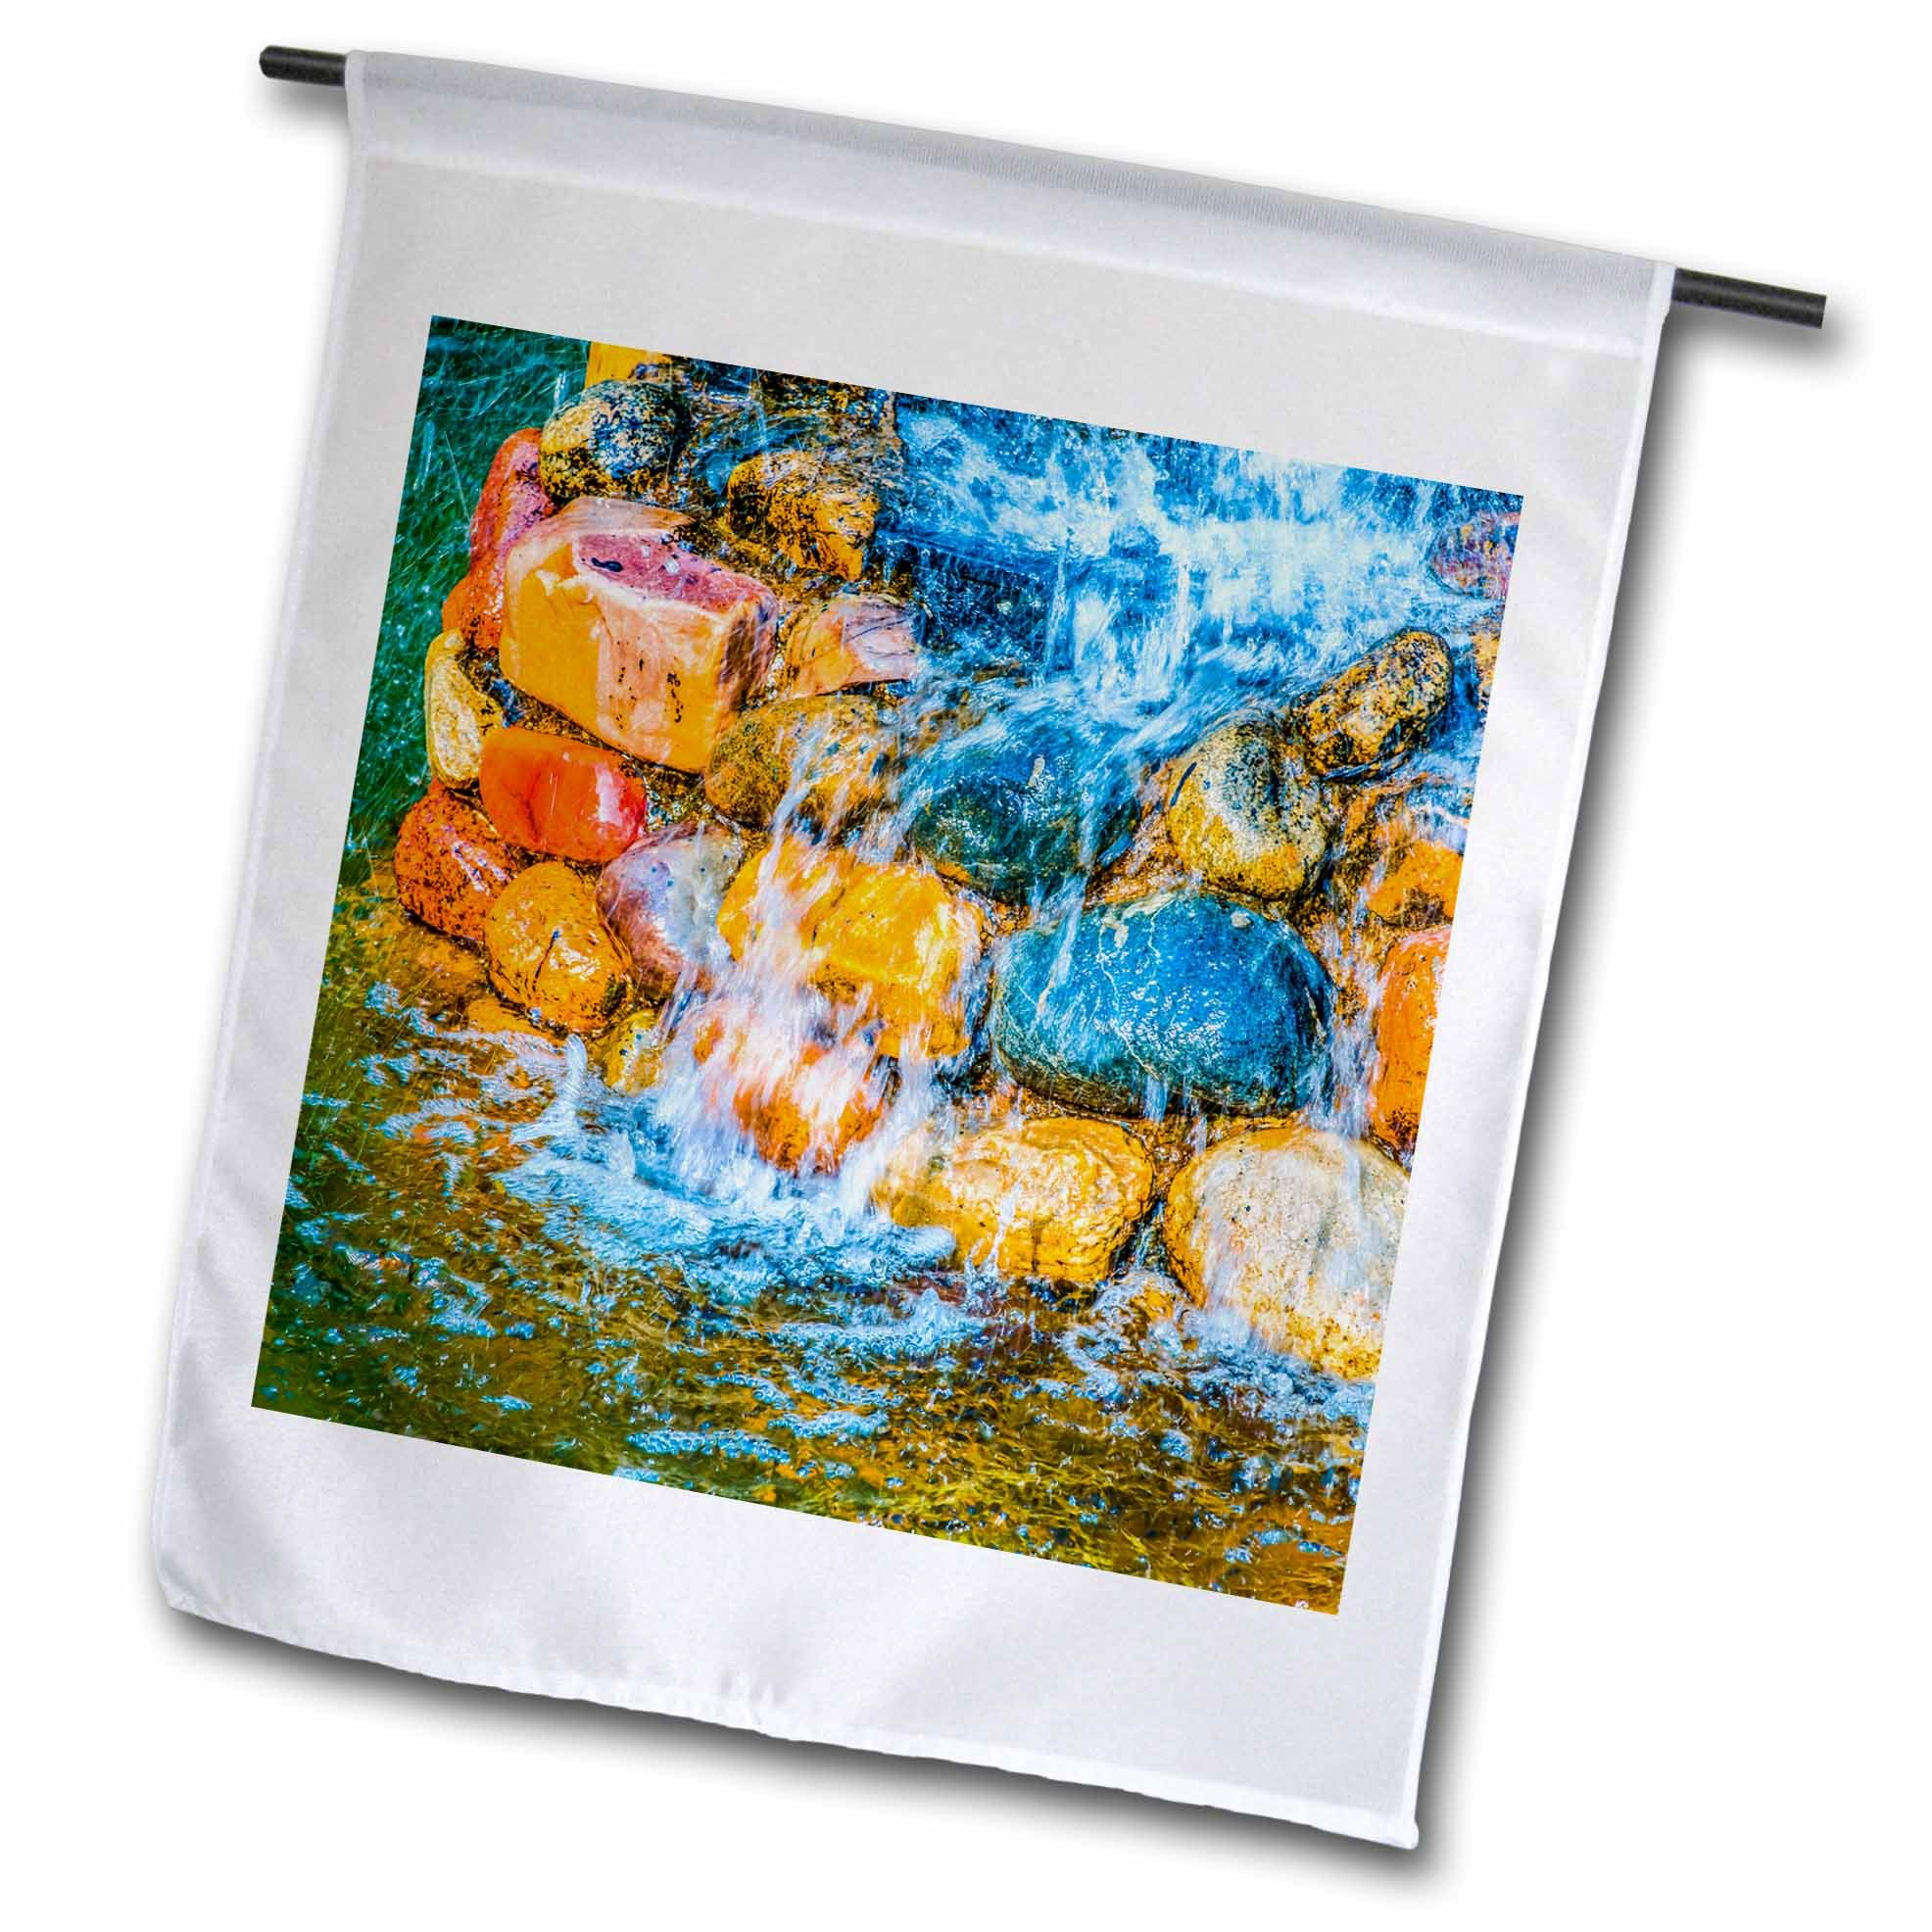 3dRose Alexis Photography - Objects - Colorful stones, splashes of clean water. Summer fountain - 18 x 27 inch Garden Flag (fl_270924_2)